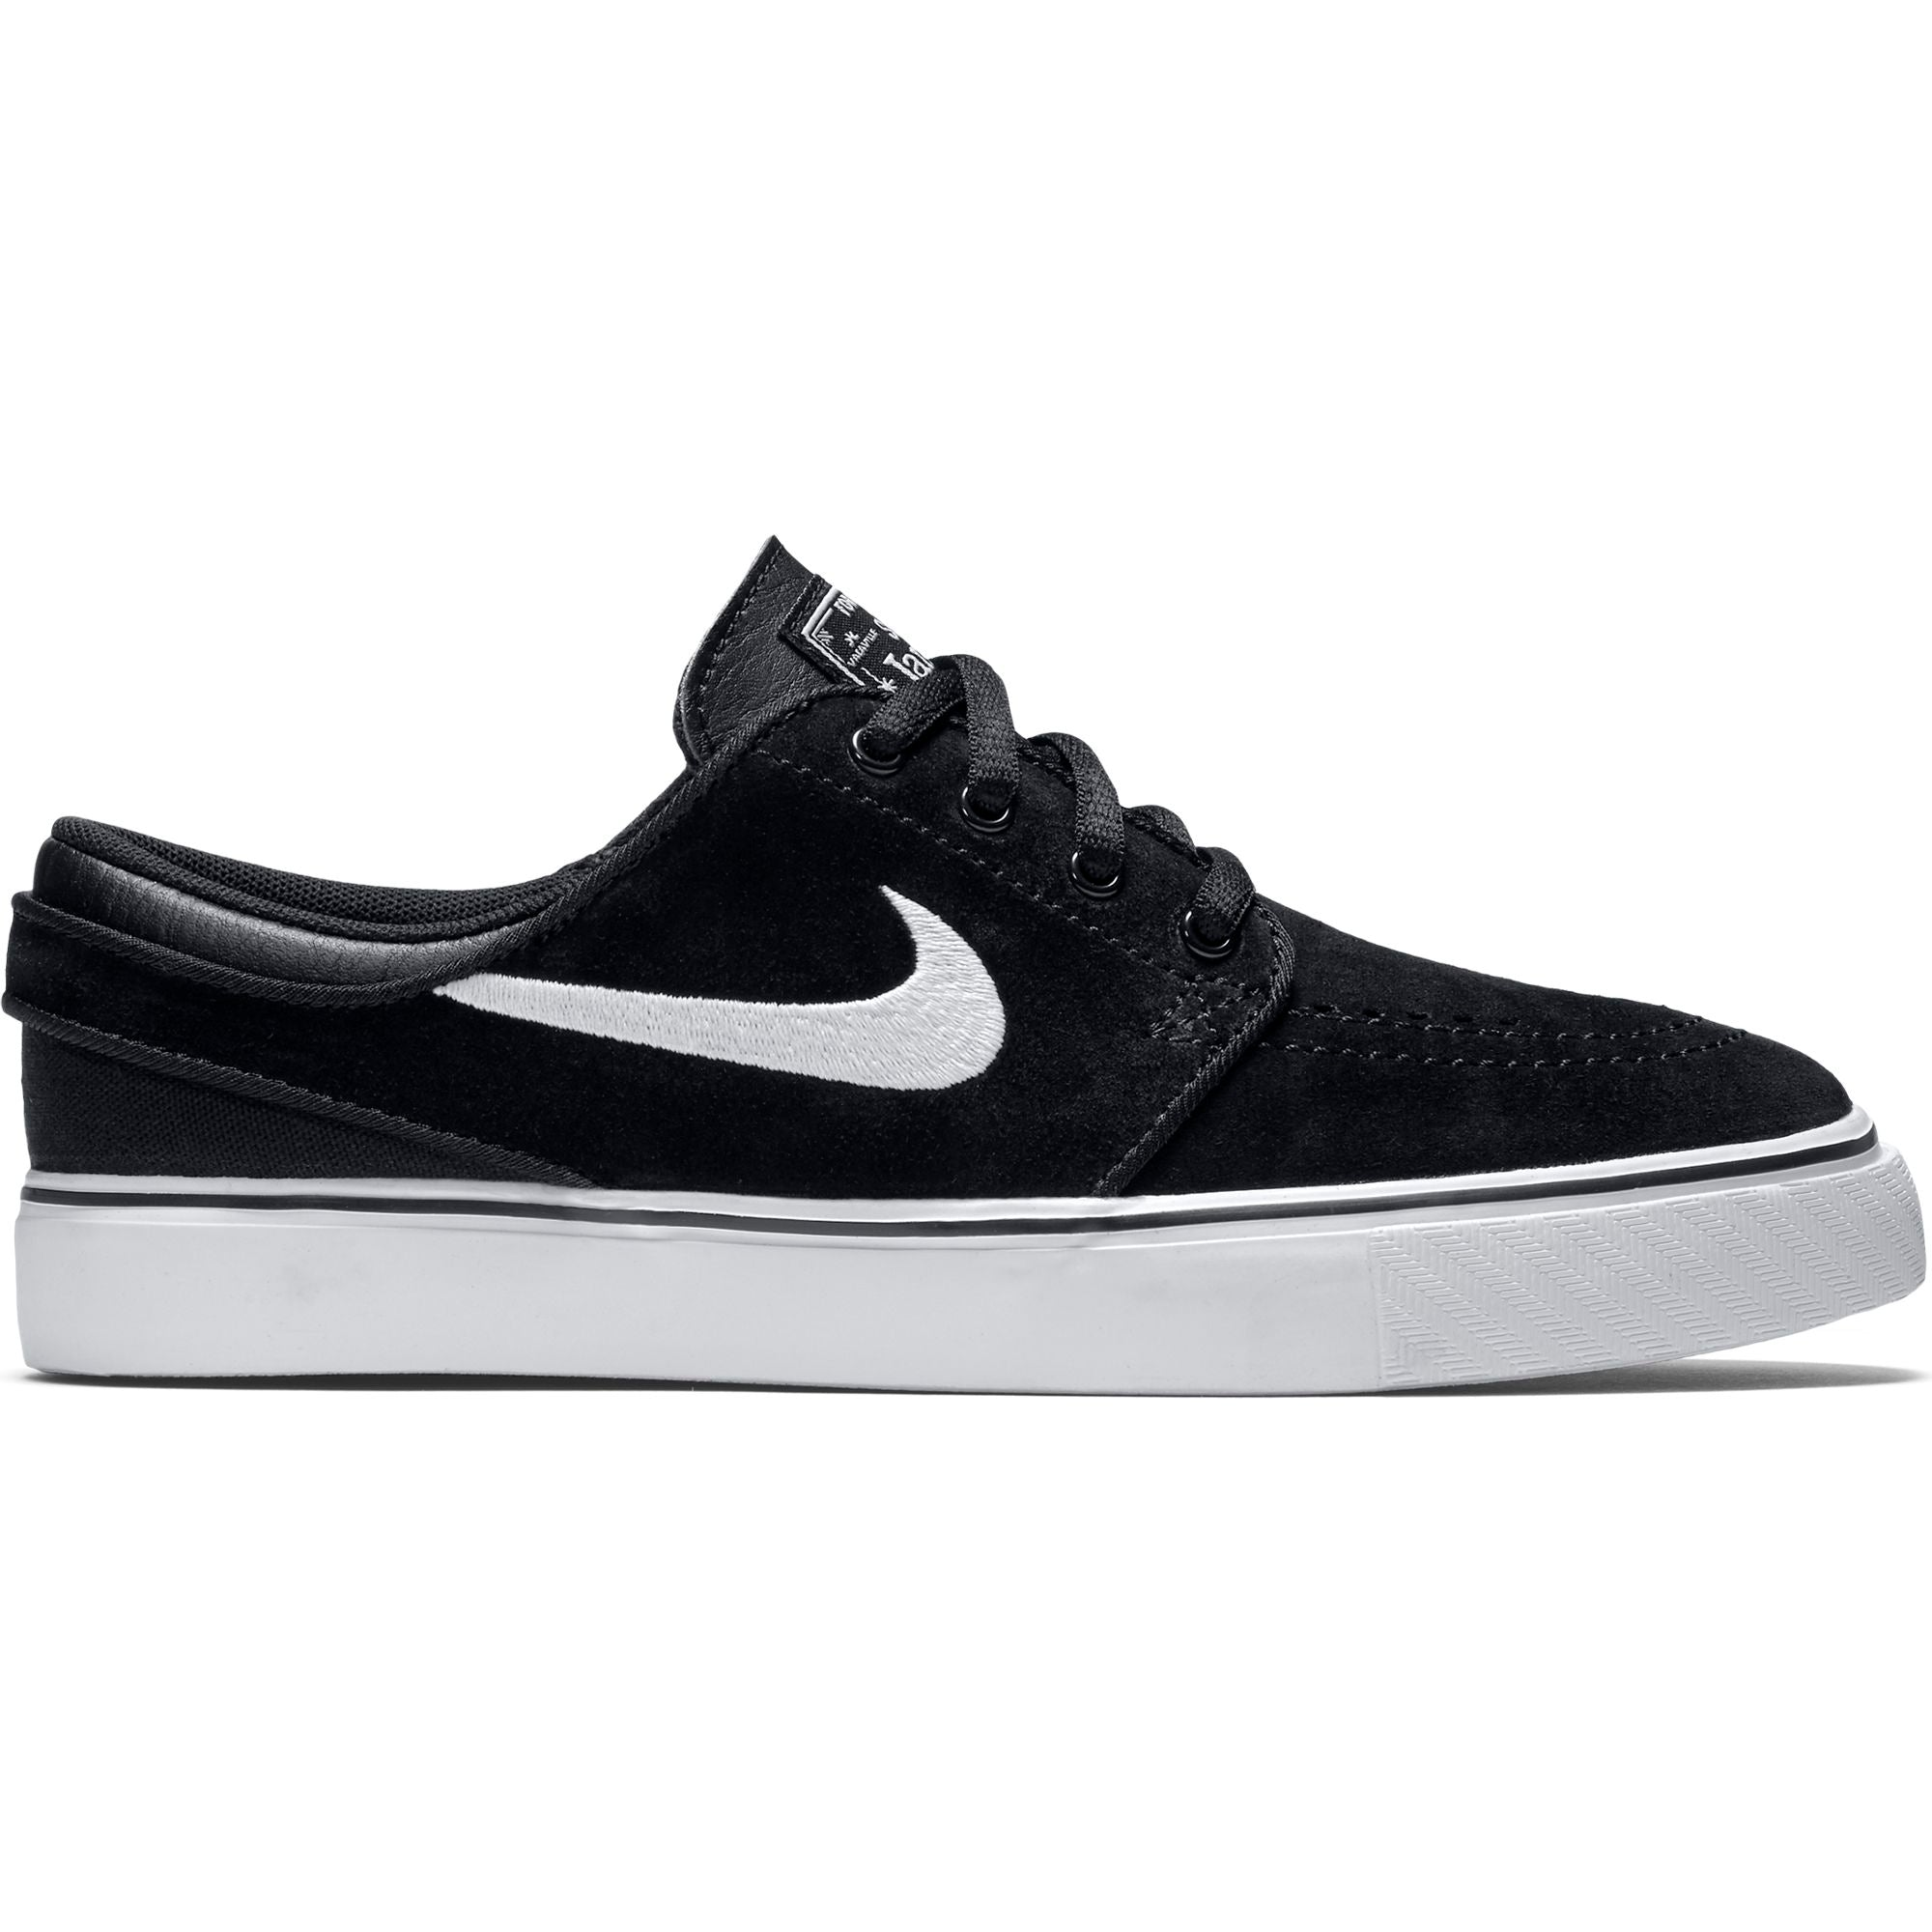 Youth Stefan Janoski (GS) Black/White gum